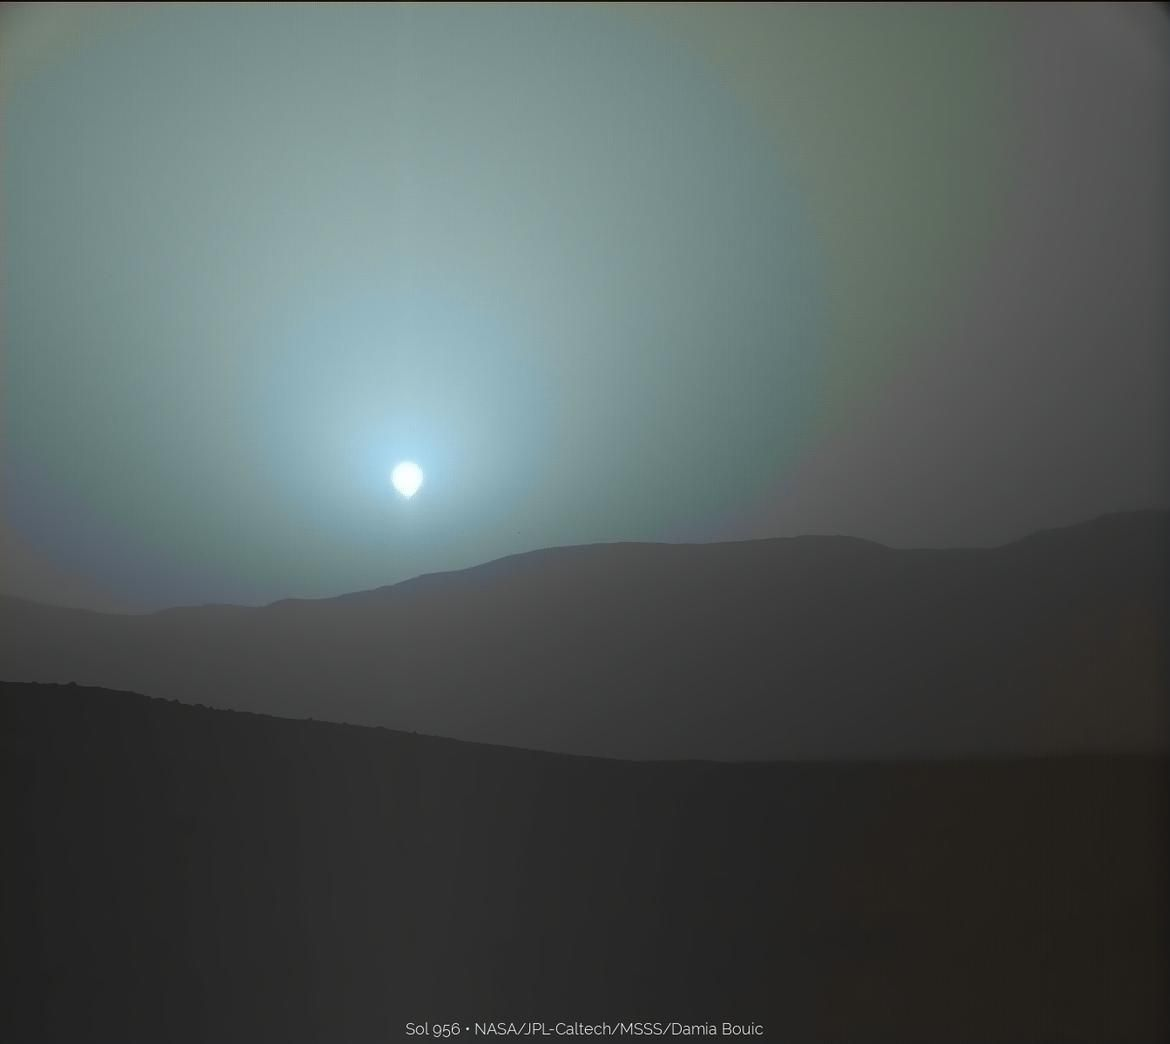 Nothing makes Mars seem more alien than its sunset, which, in contrast to Earth sunsets, occurs in cool blue hues. This is because the thin Martian atmosphere contains dust particles that allow blue light to penetrate more efficiently when the sun is low on the horizon.